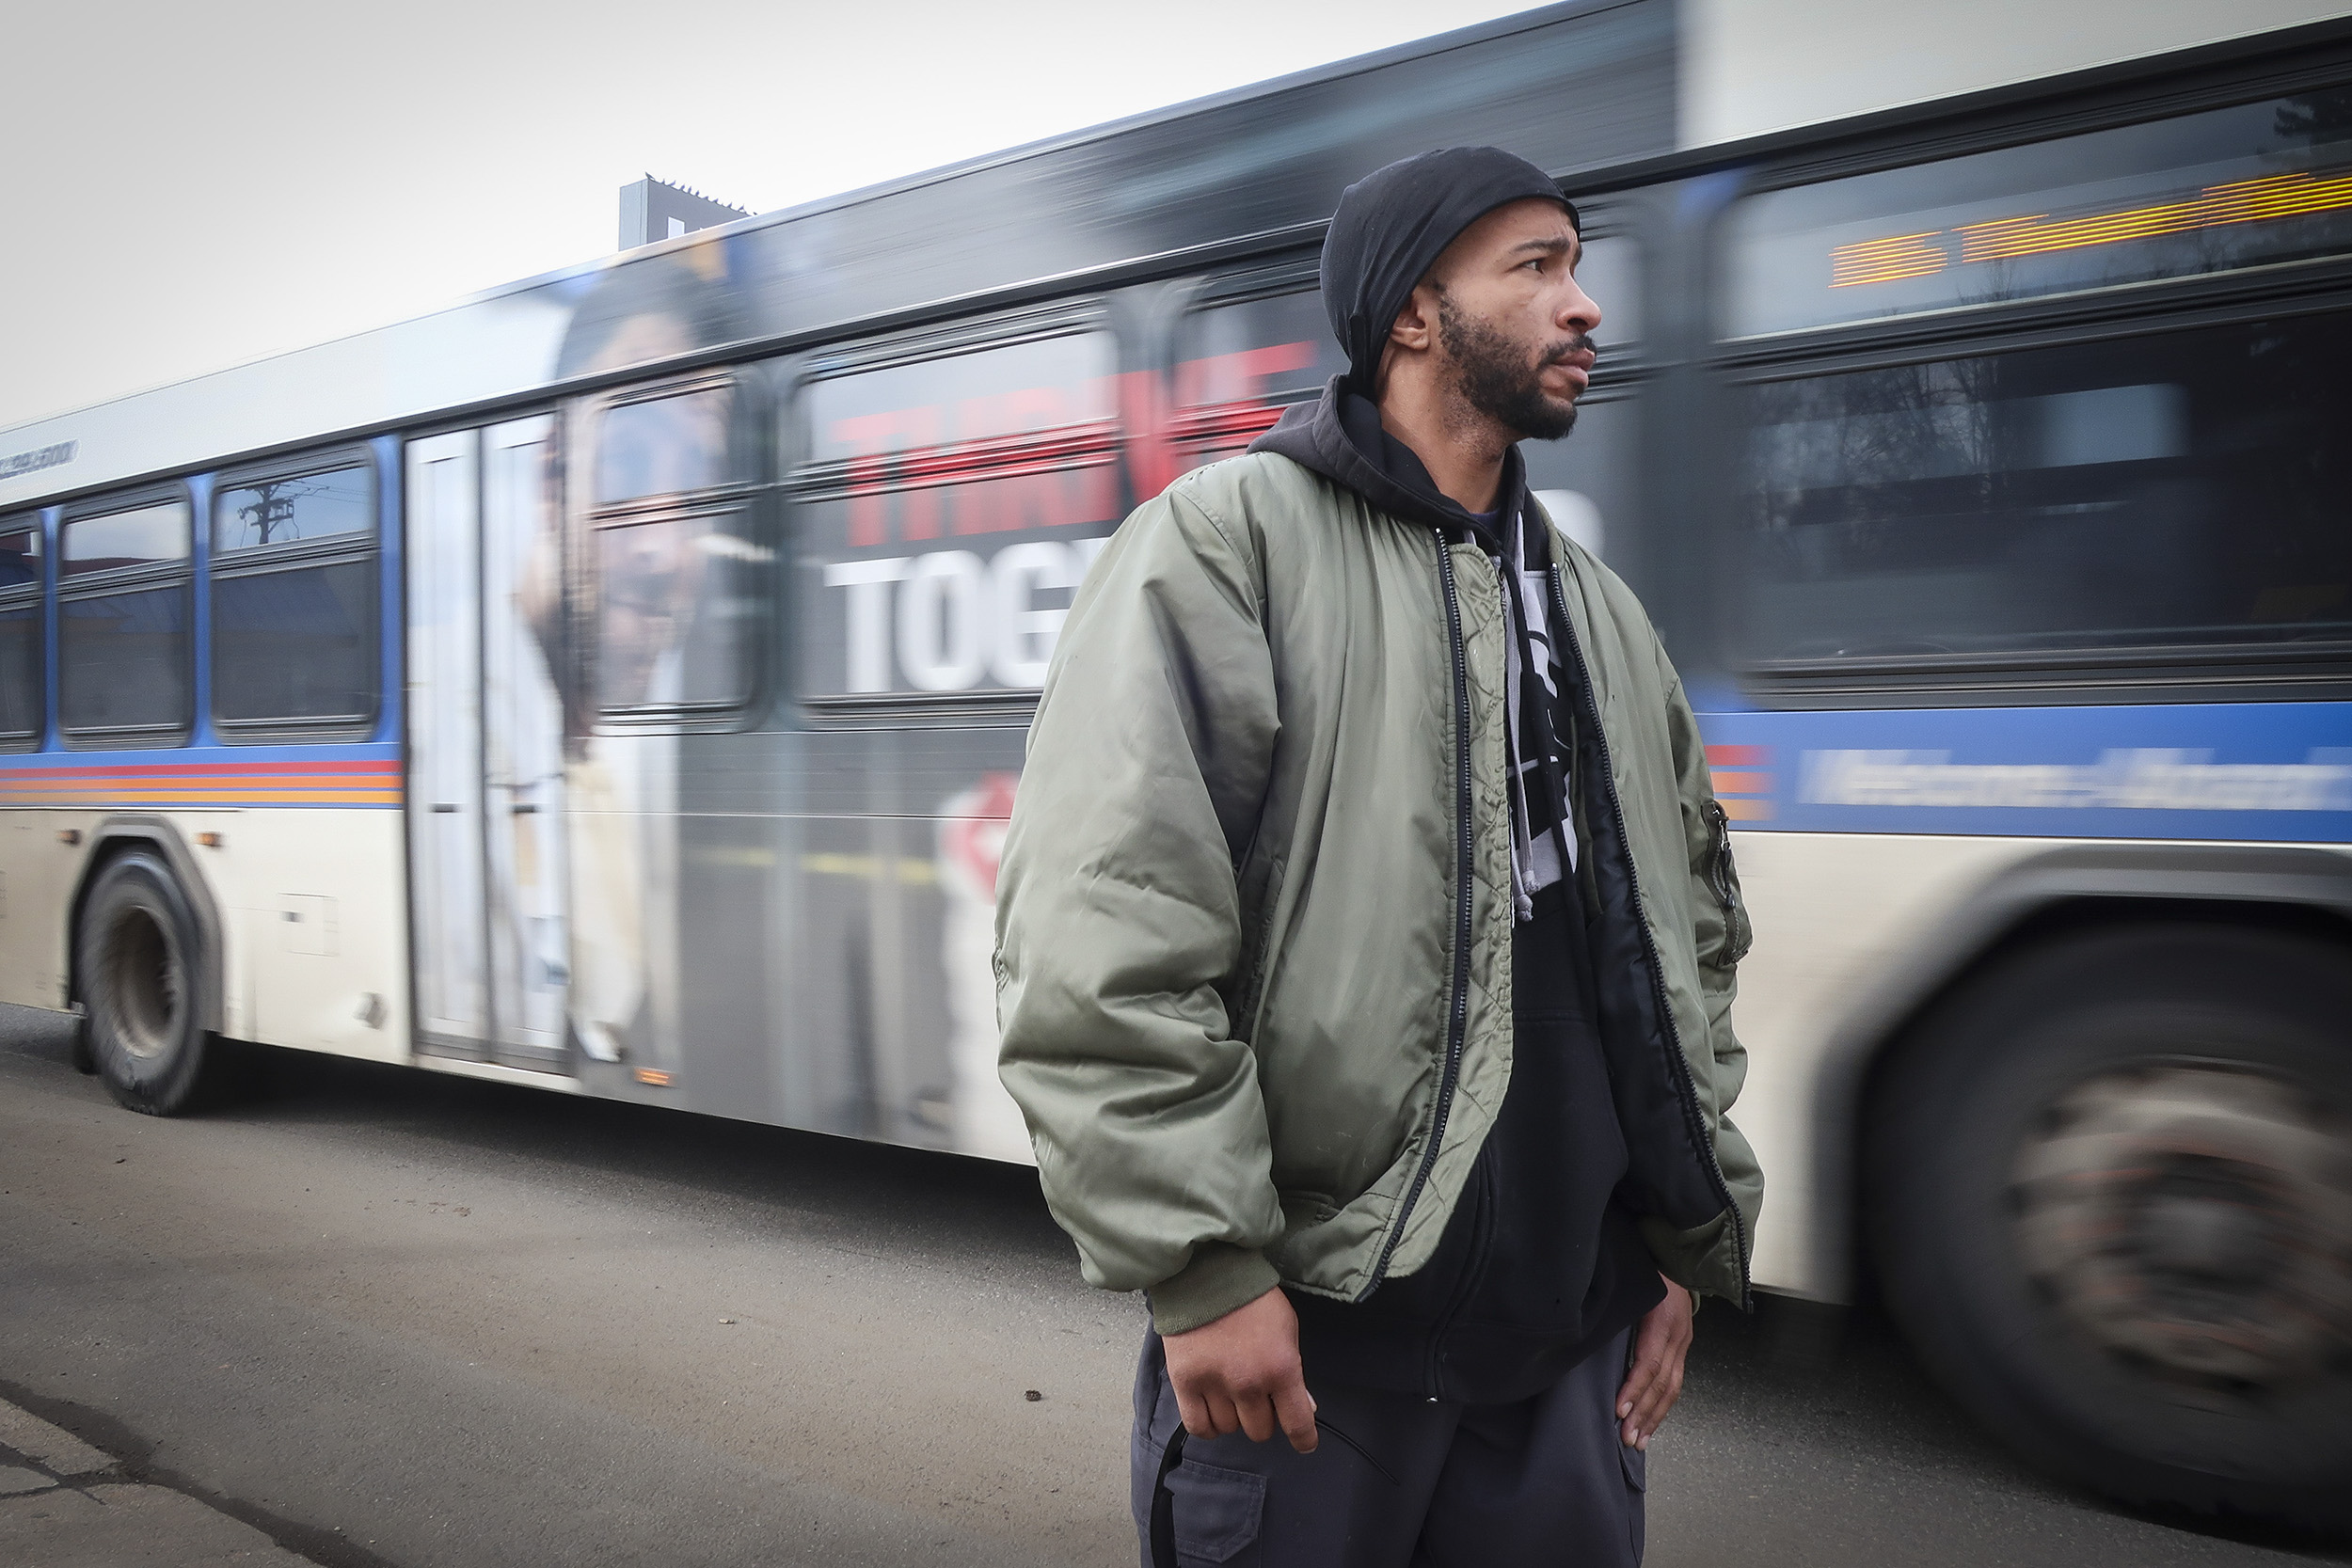 Kevin Beasley said he's been homeless off an on for about two years, and has used passes from the St. Francis Center to ride RTD's buses and trains. Those are increasingly hard to come by, he said.